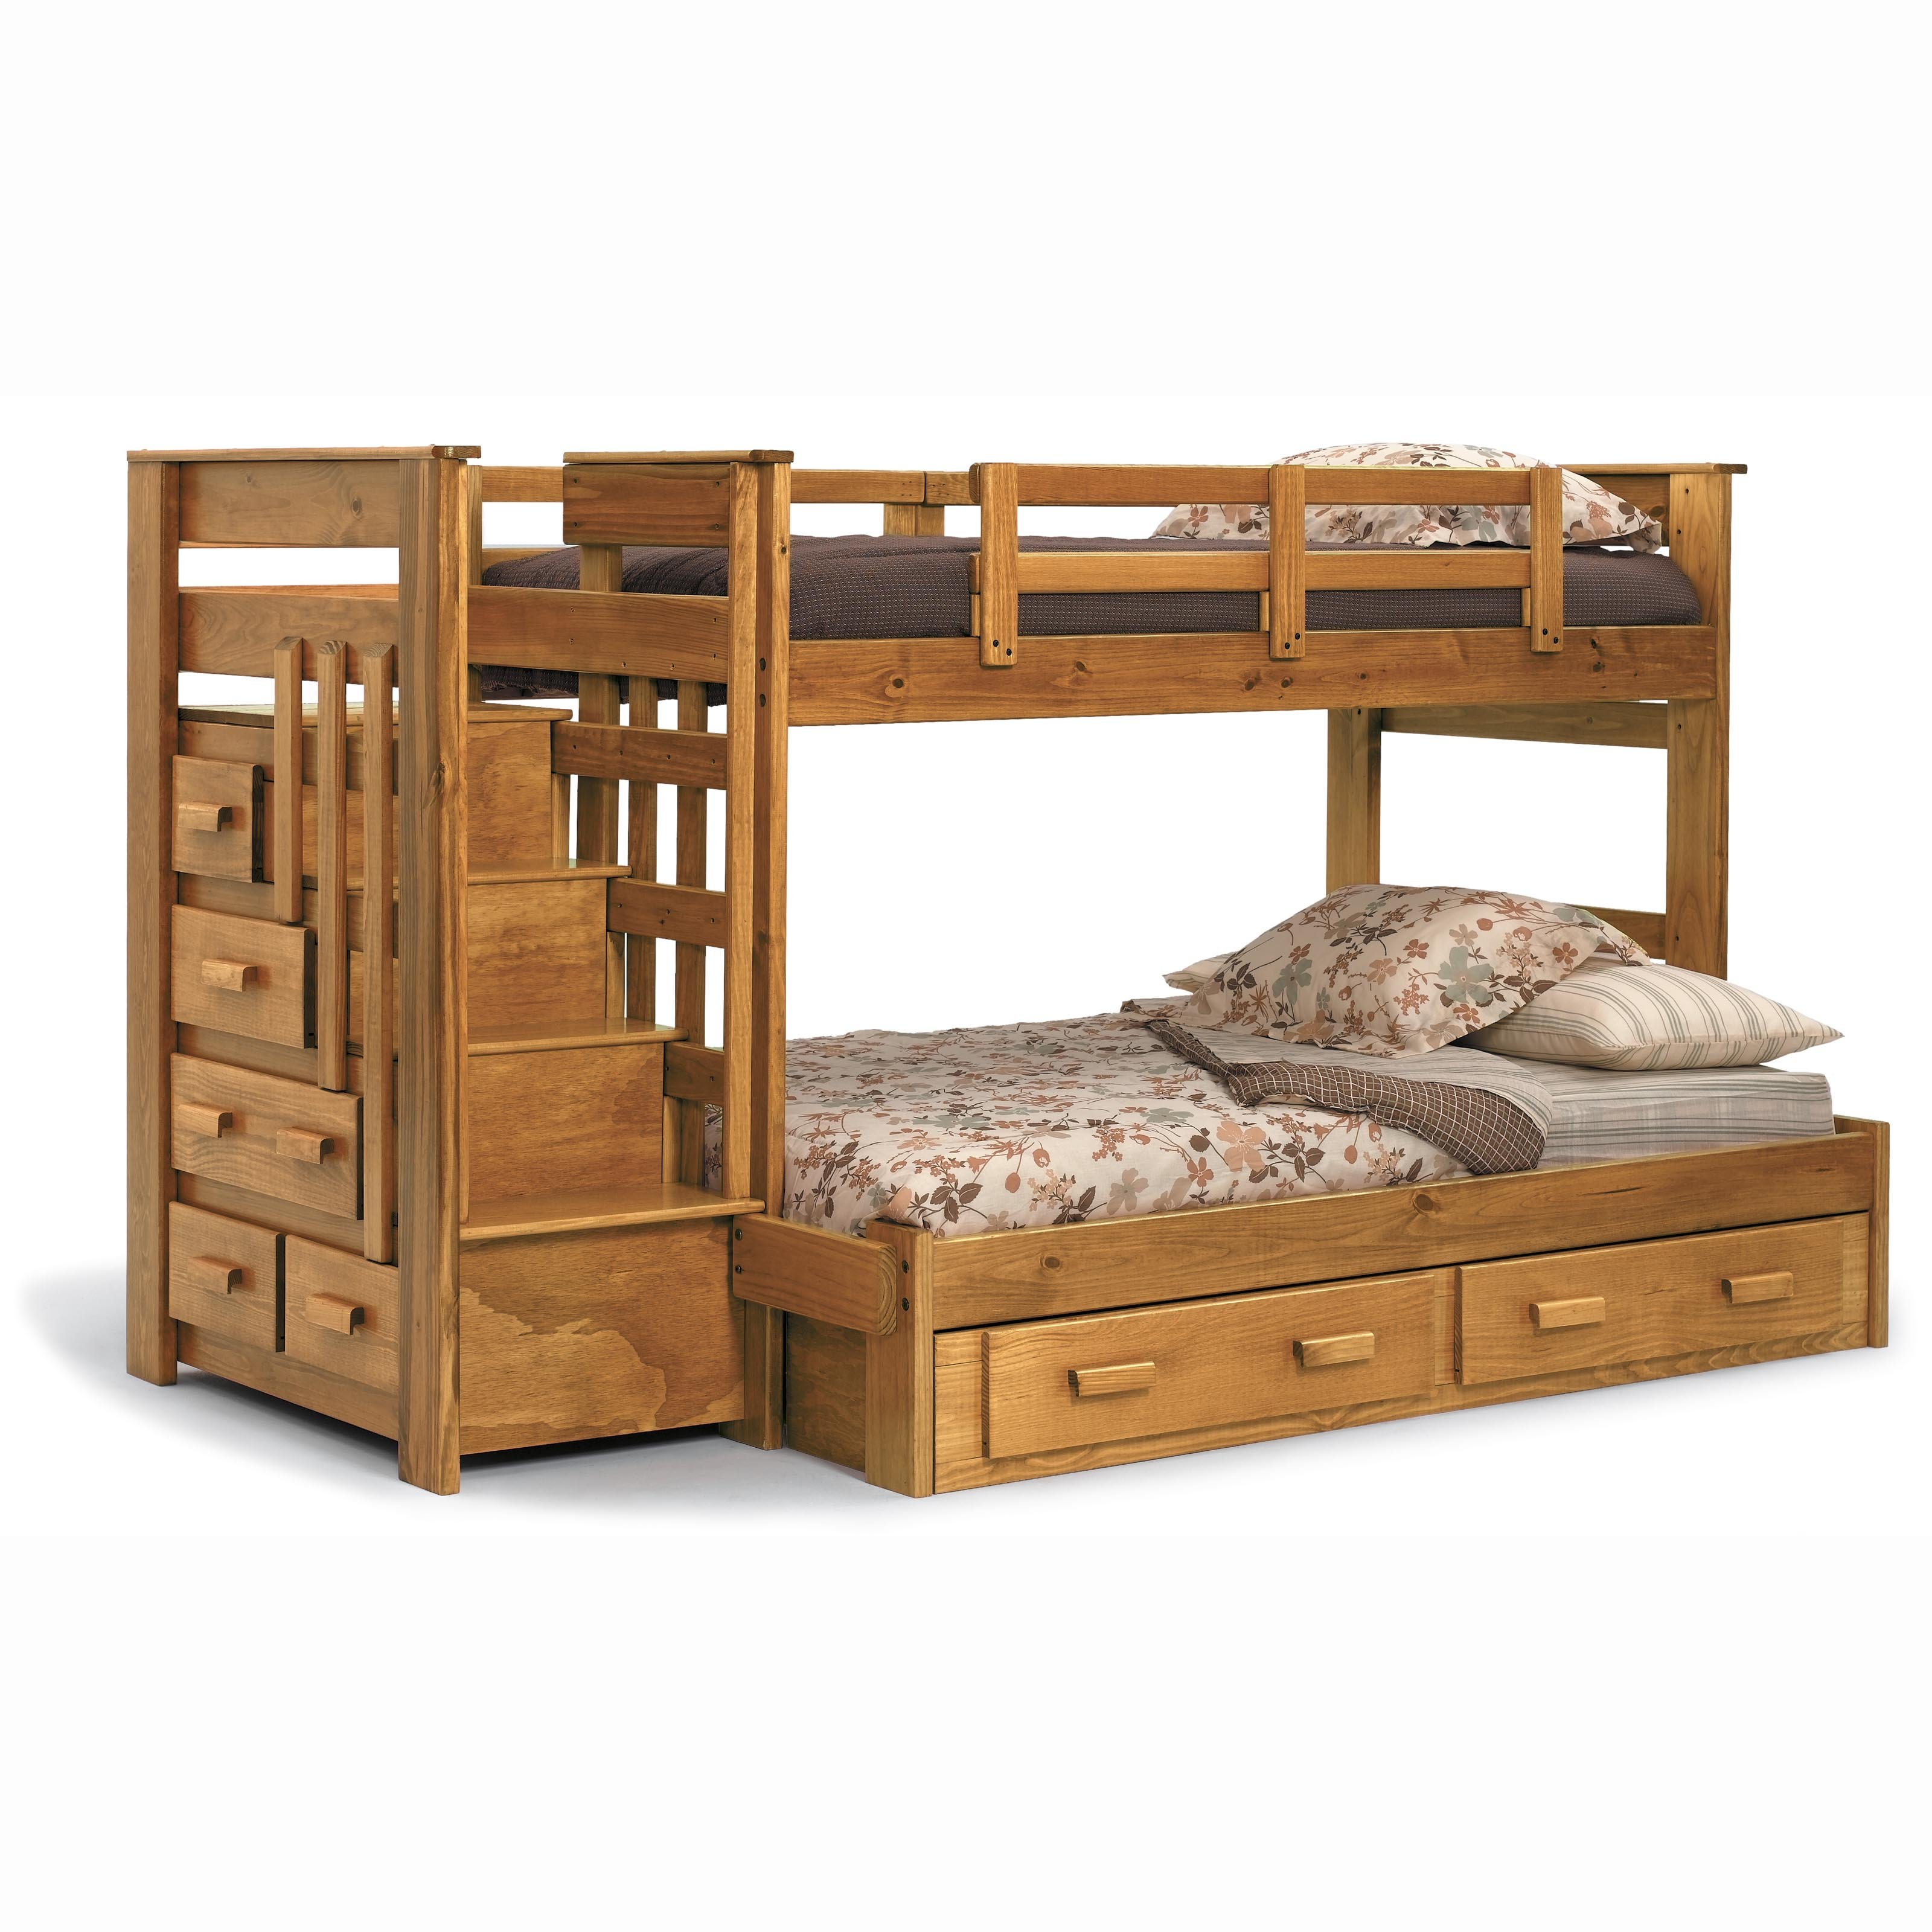 Twin Loft Bed Bunk Bed Plans Twin Over Full | Bed Plans Diy & Blueprints